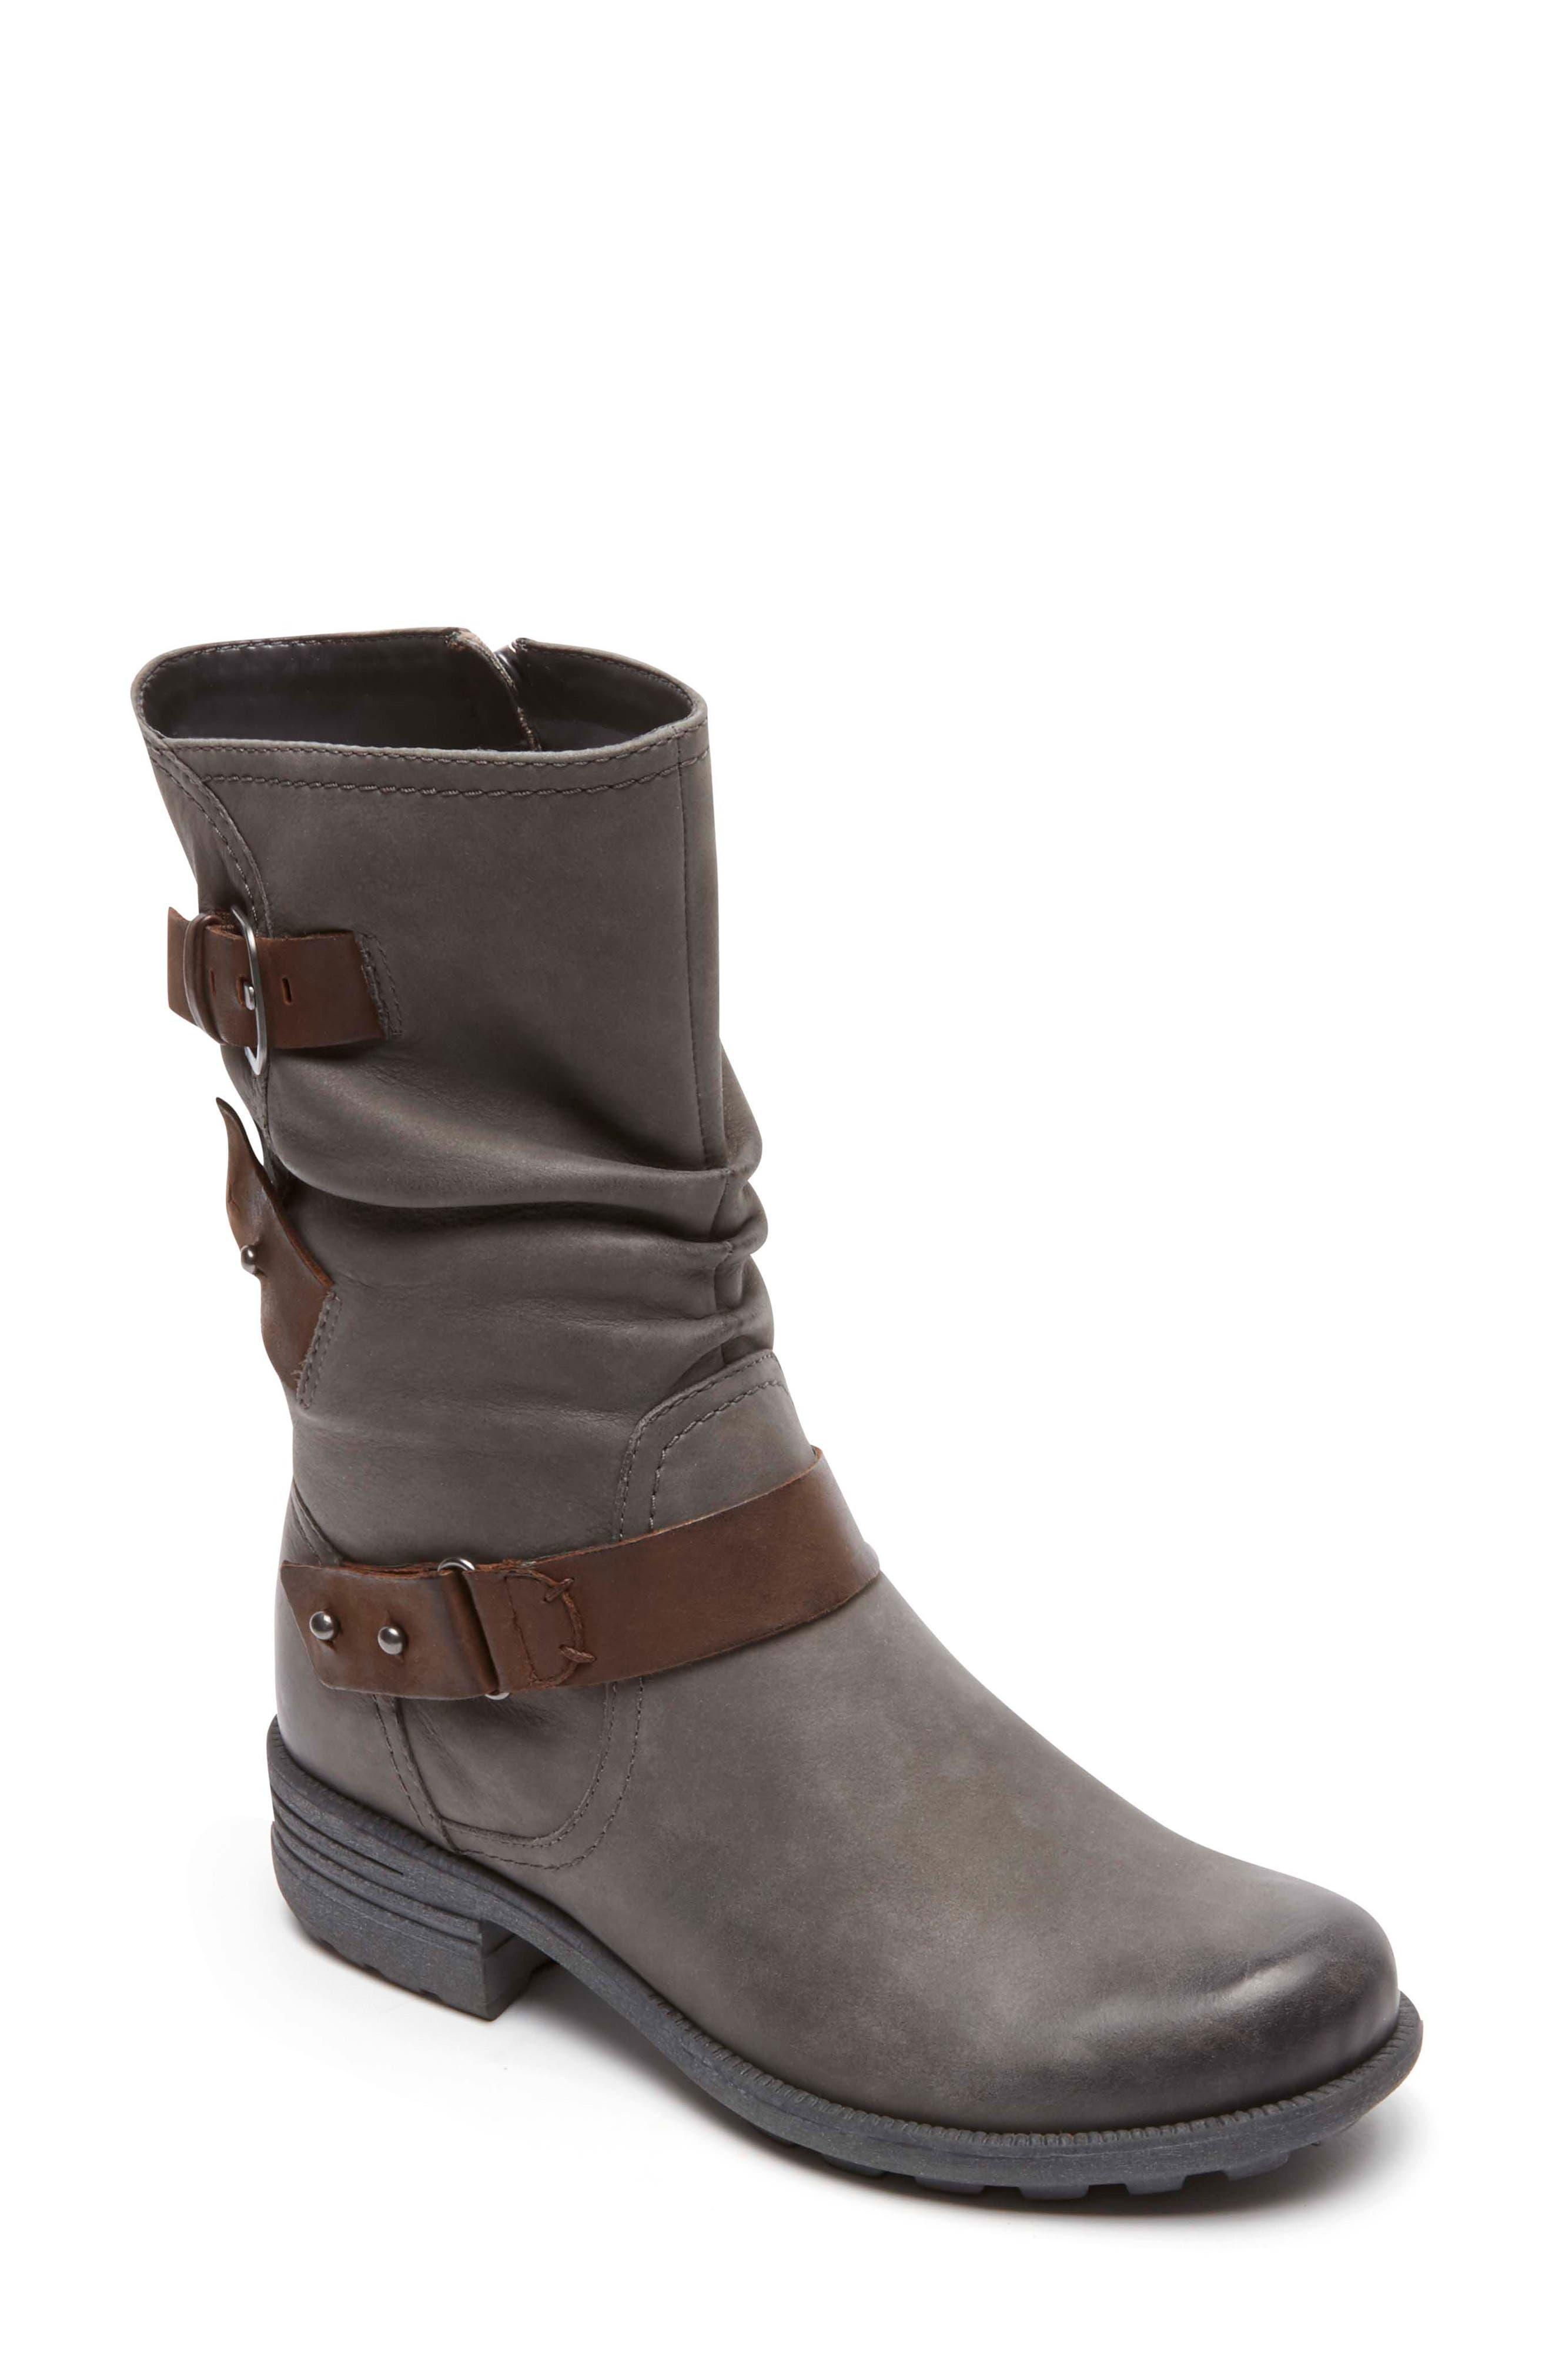 Alternate Image 1 Selected - Rockport Cobb Hill Brunswick Boot (Women)